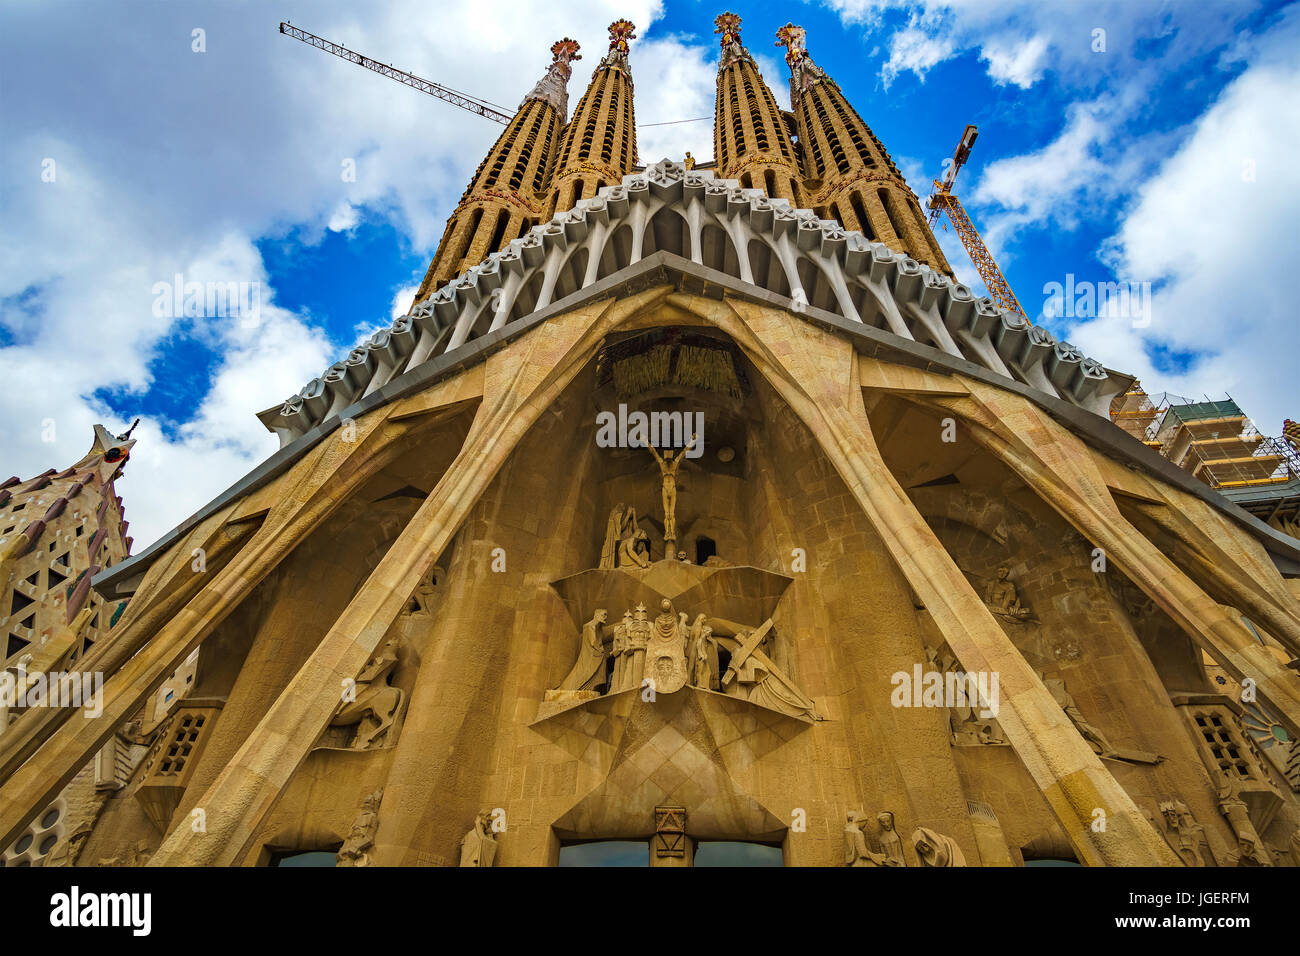 Sagrada Família (Basilica Church of the Holy Family) is a large Roman Catholic church in Barcelona, designed - Stock Image